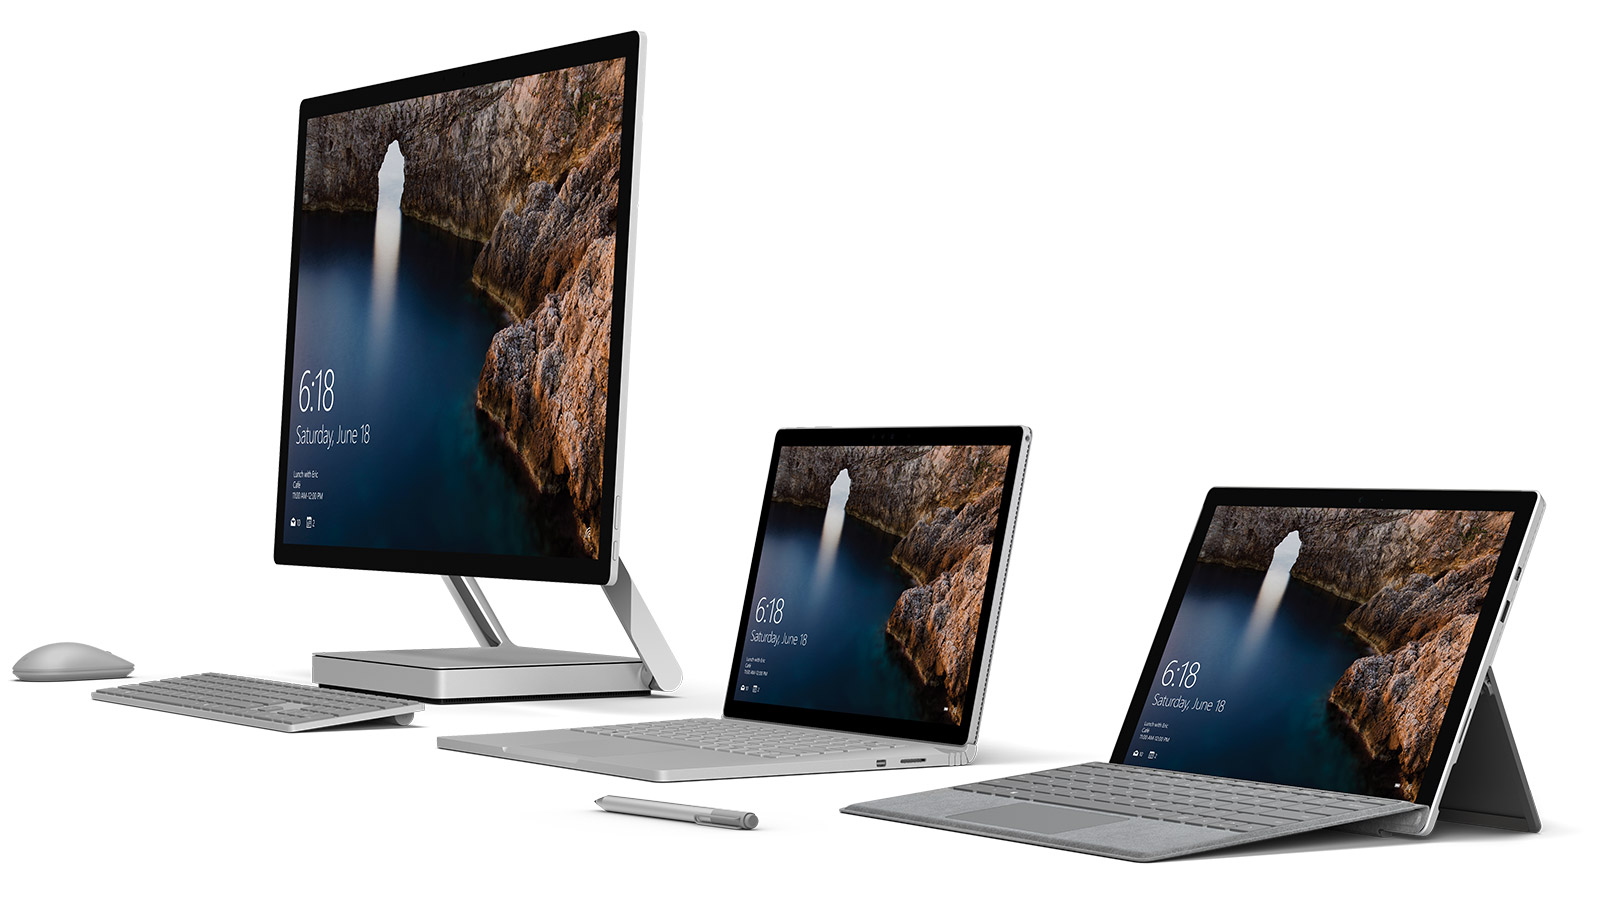 Surface Studio, Surface Book and Surface Pro 4 side by side